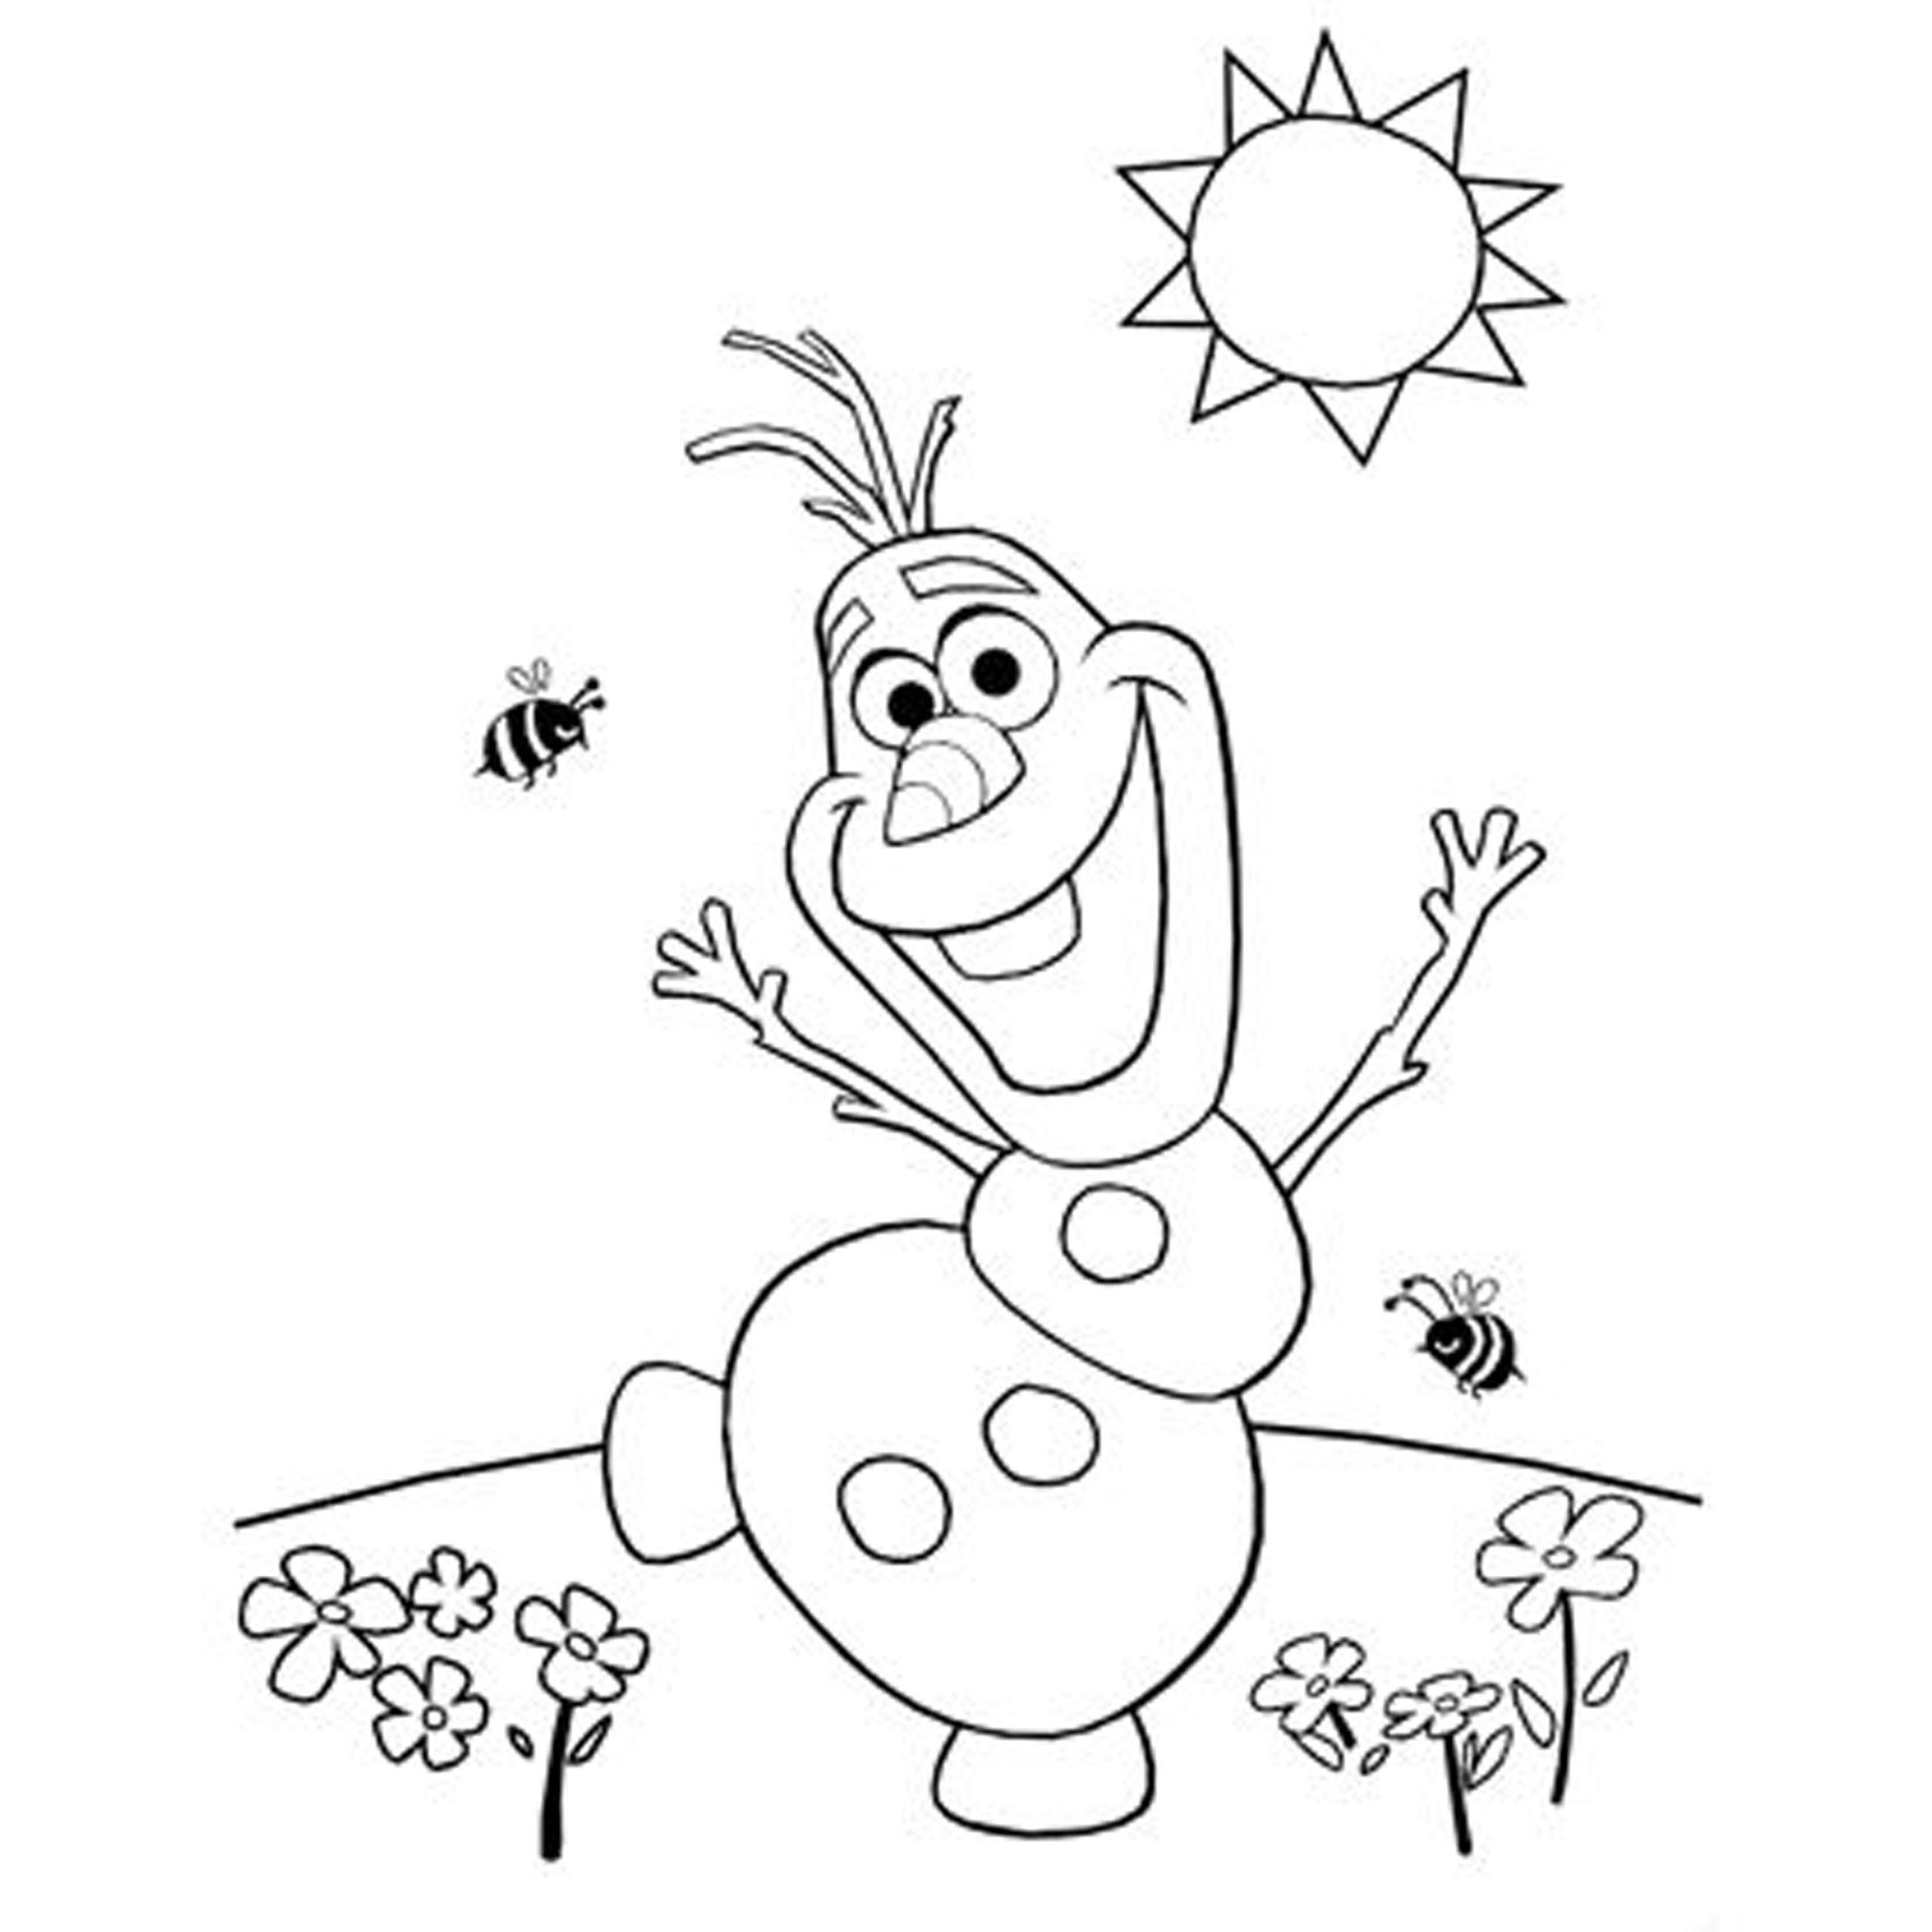 2550x2550 On Coloring Pages Of Olaf From Frozen